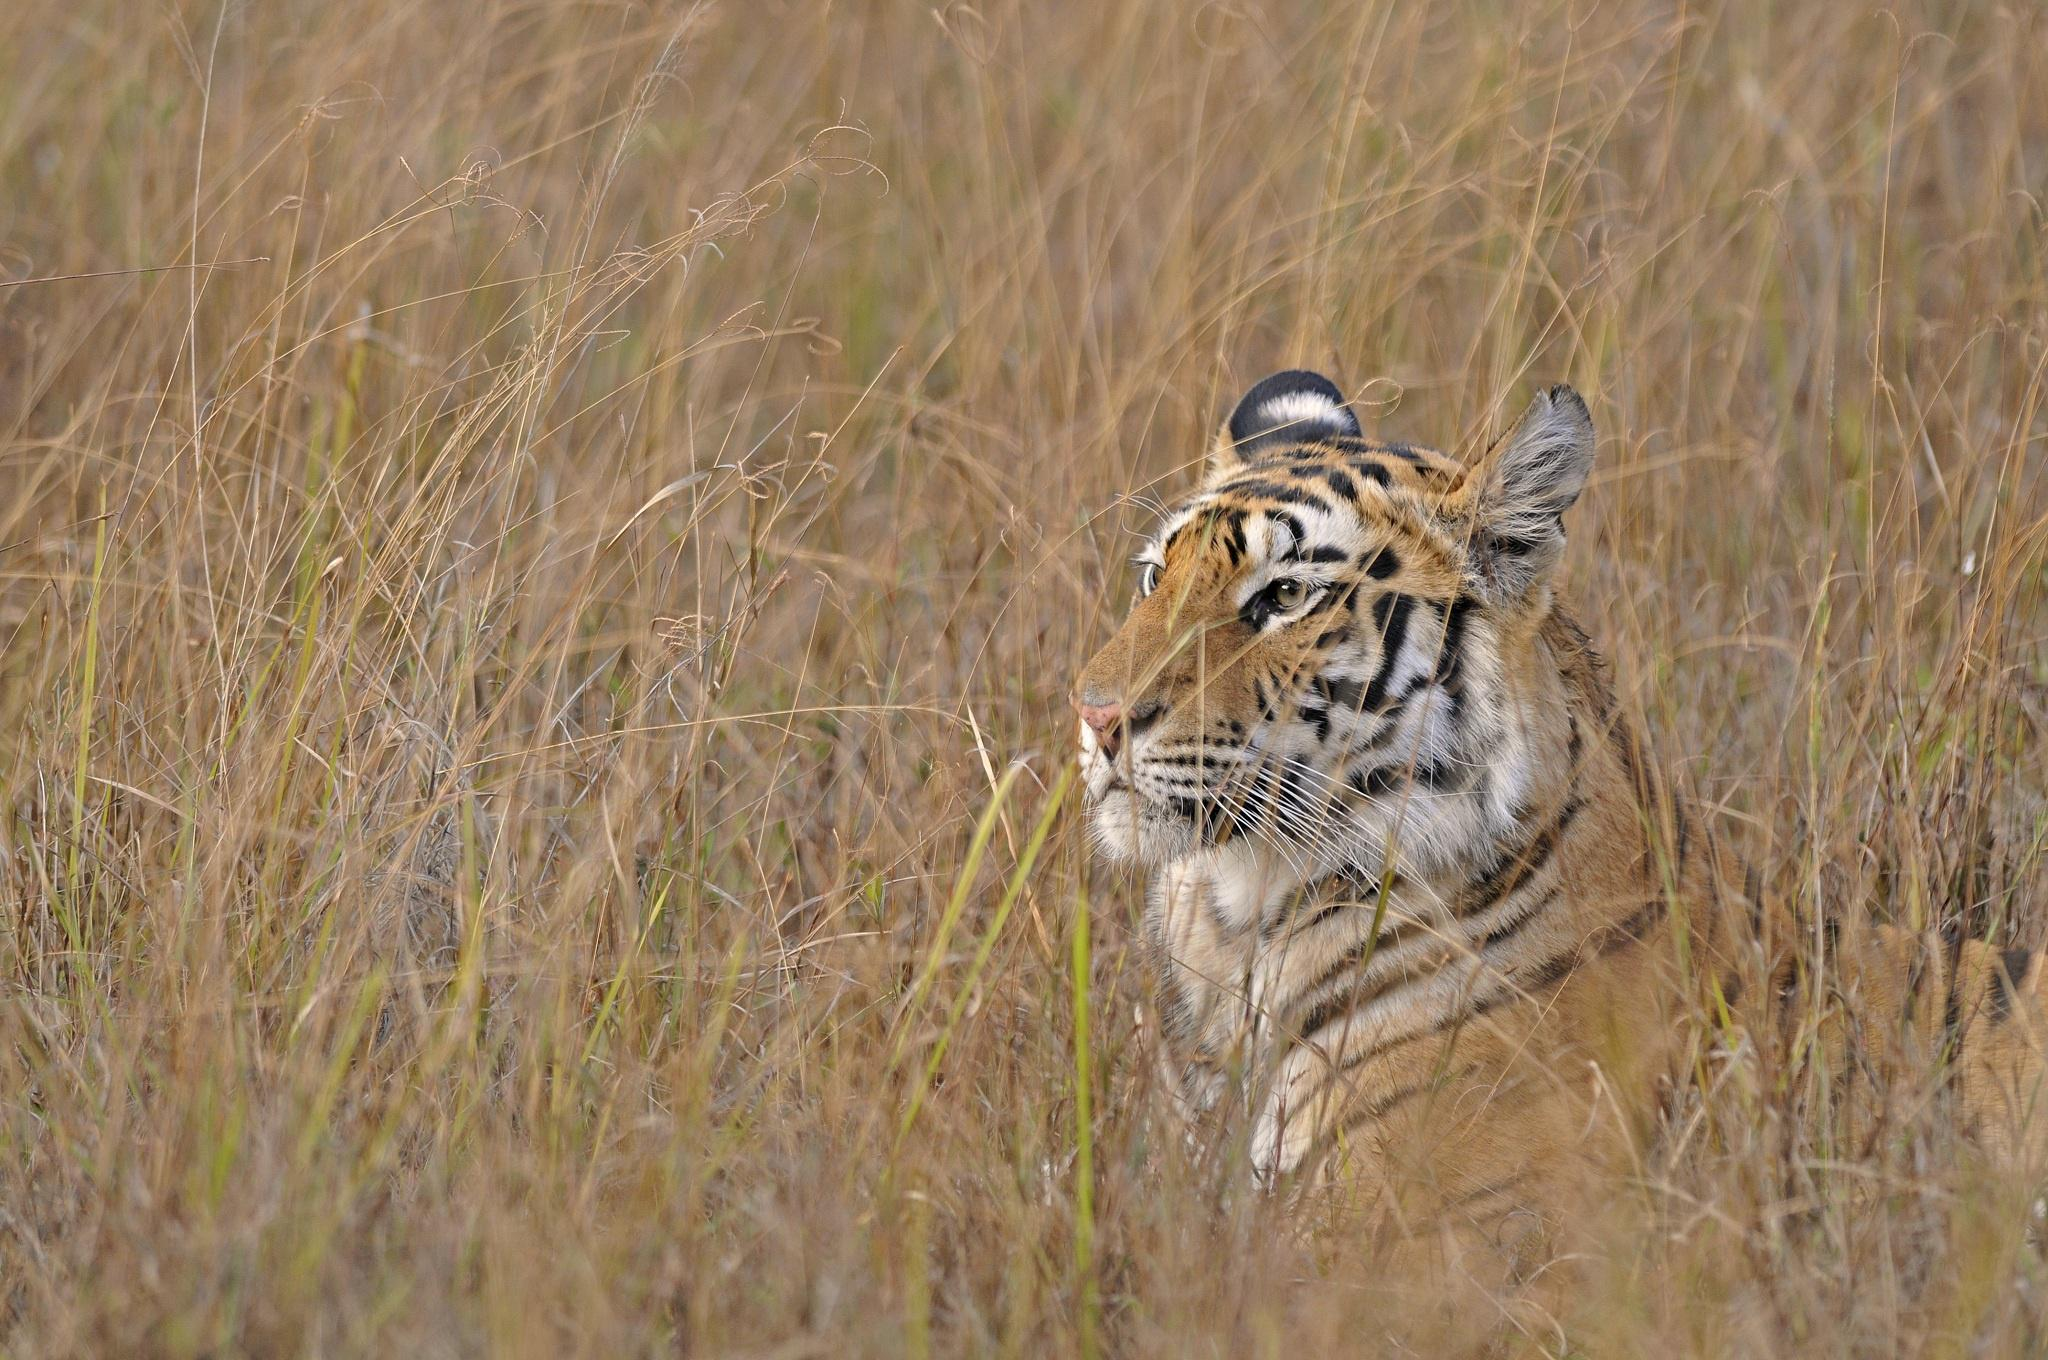 Cute Tiger Cubs Hd Wallpapers Hd Tiger Wild Cat Face Profile Grass Camouflage Hd